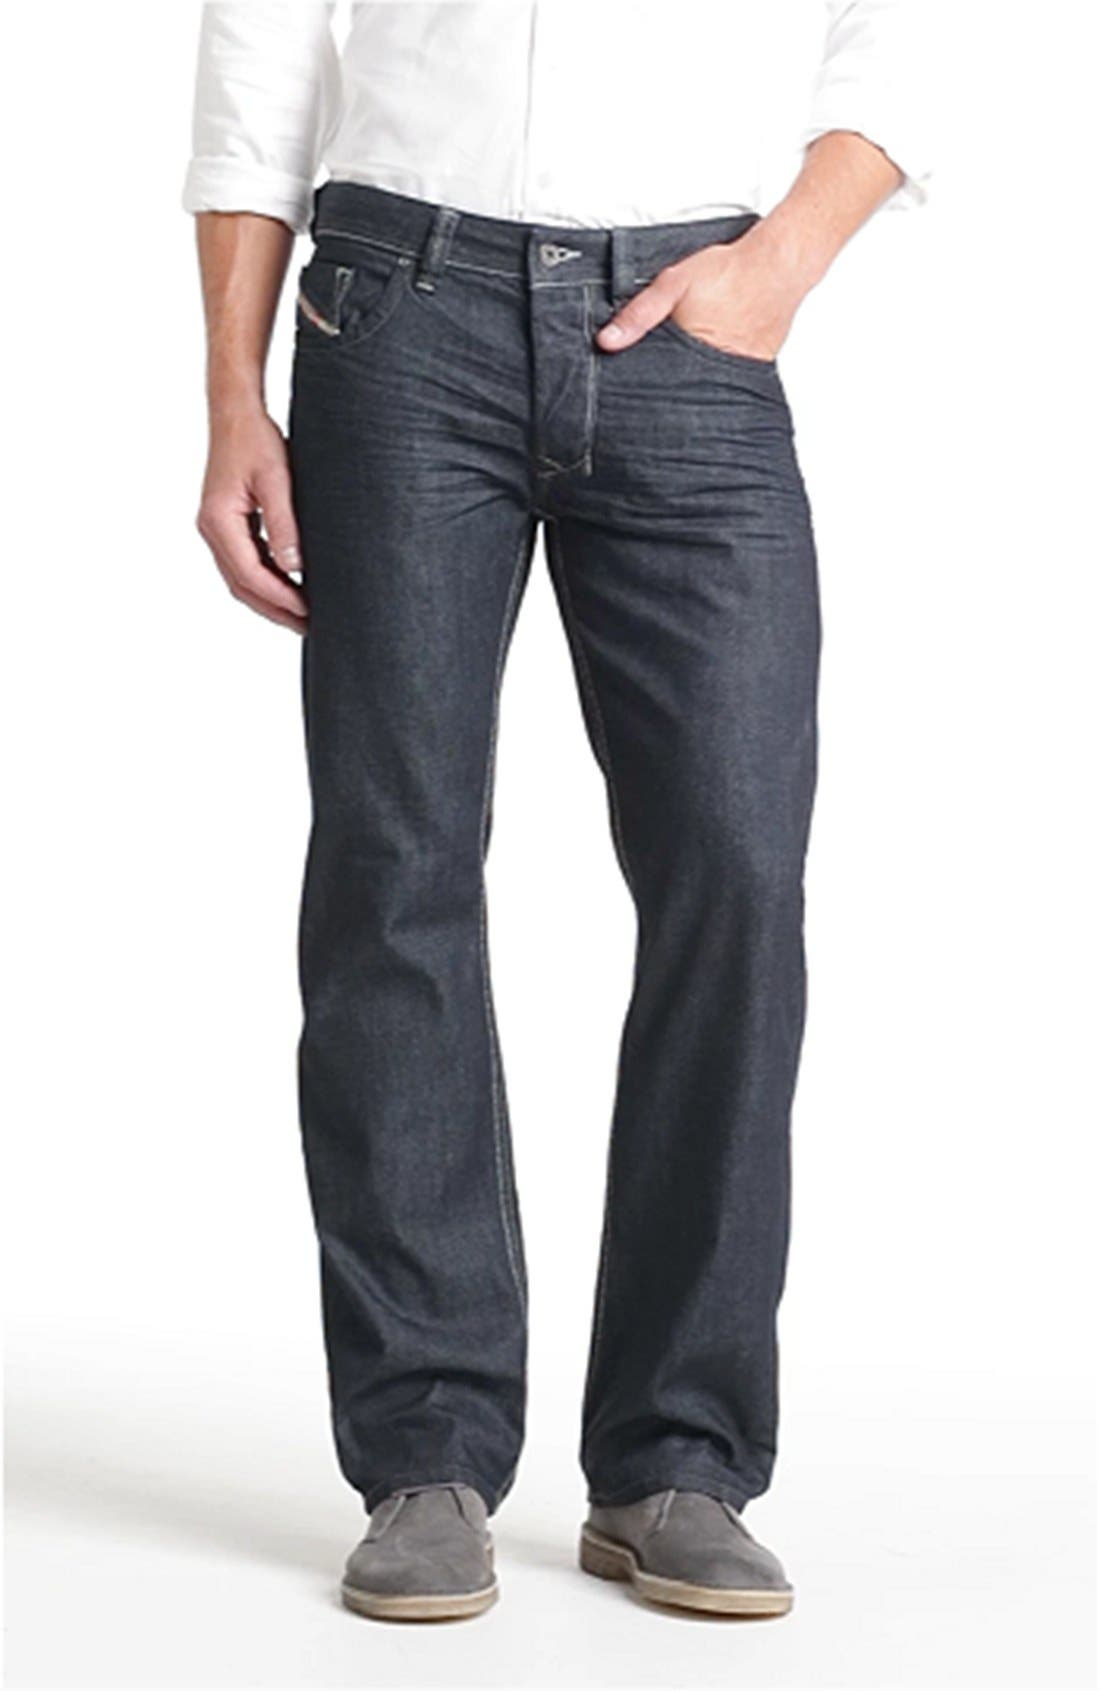 'Larkee' Straight Leg Jeans,                             Alternate thumbnail 5, color,                             400